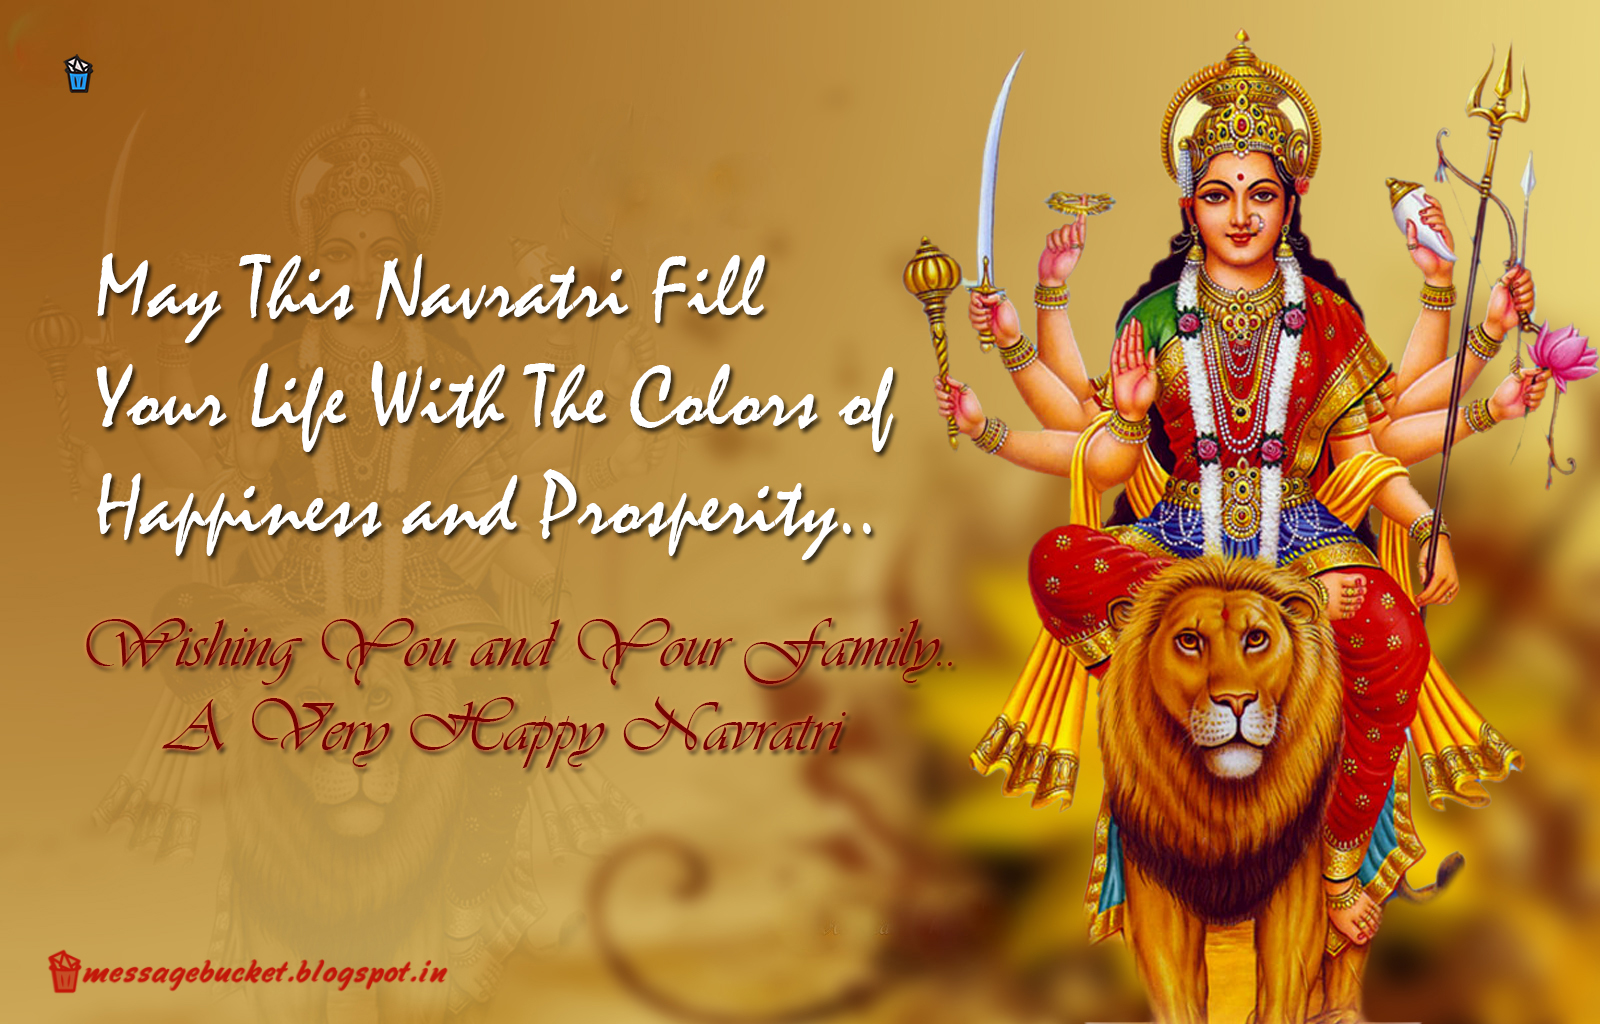 Cute mobile sms n messages happy navratri greeting happy navratri greeting kristyandbryce Choice Image